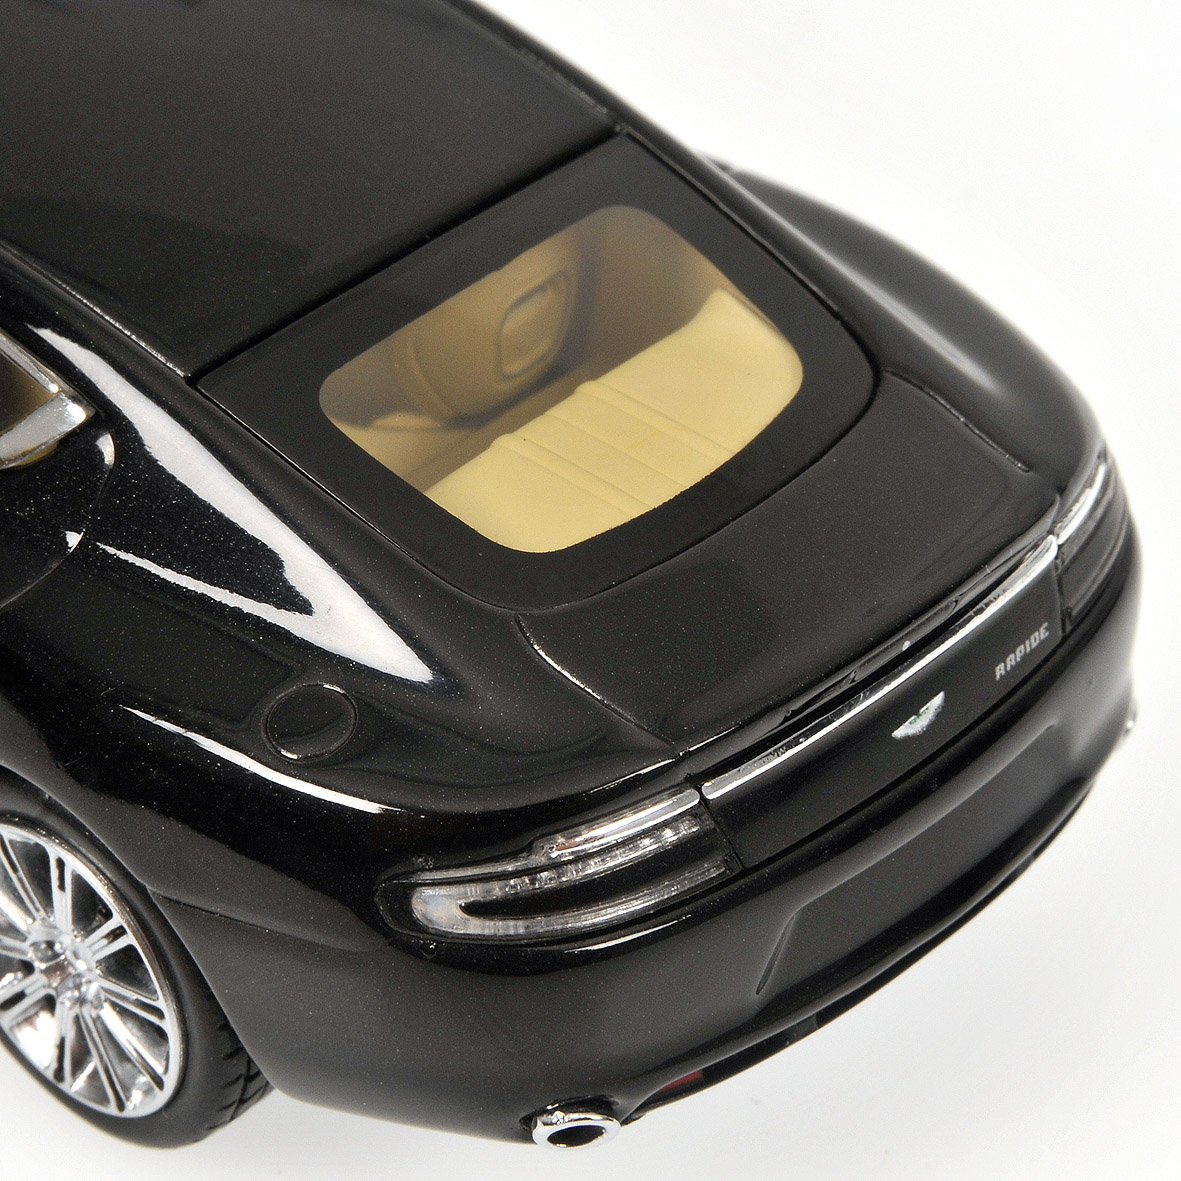 Minichamps: 2010 Aston Martin Rapide - Black Metallic (400 137900) in 1:43 scale